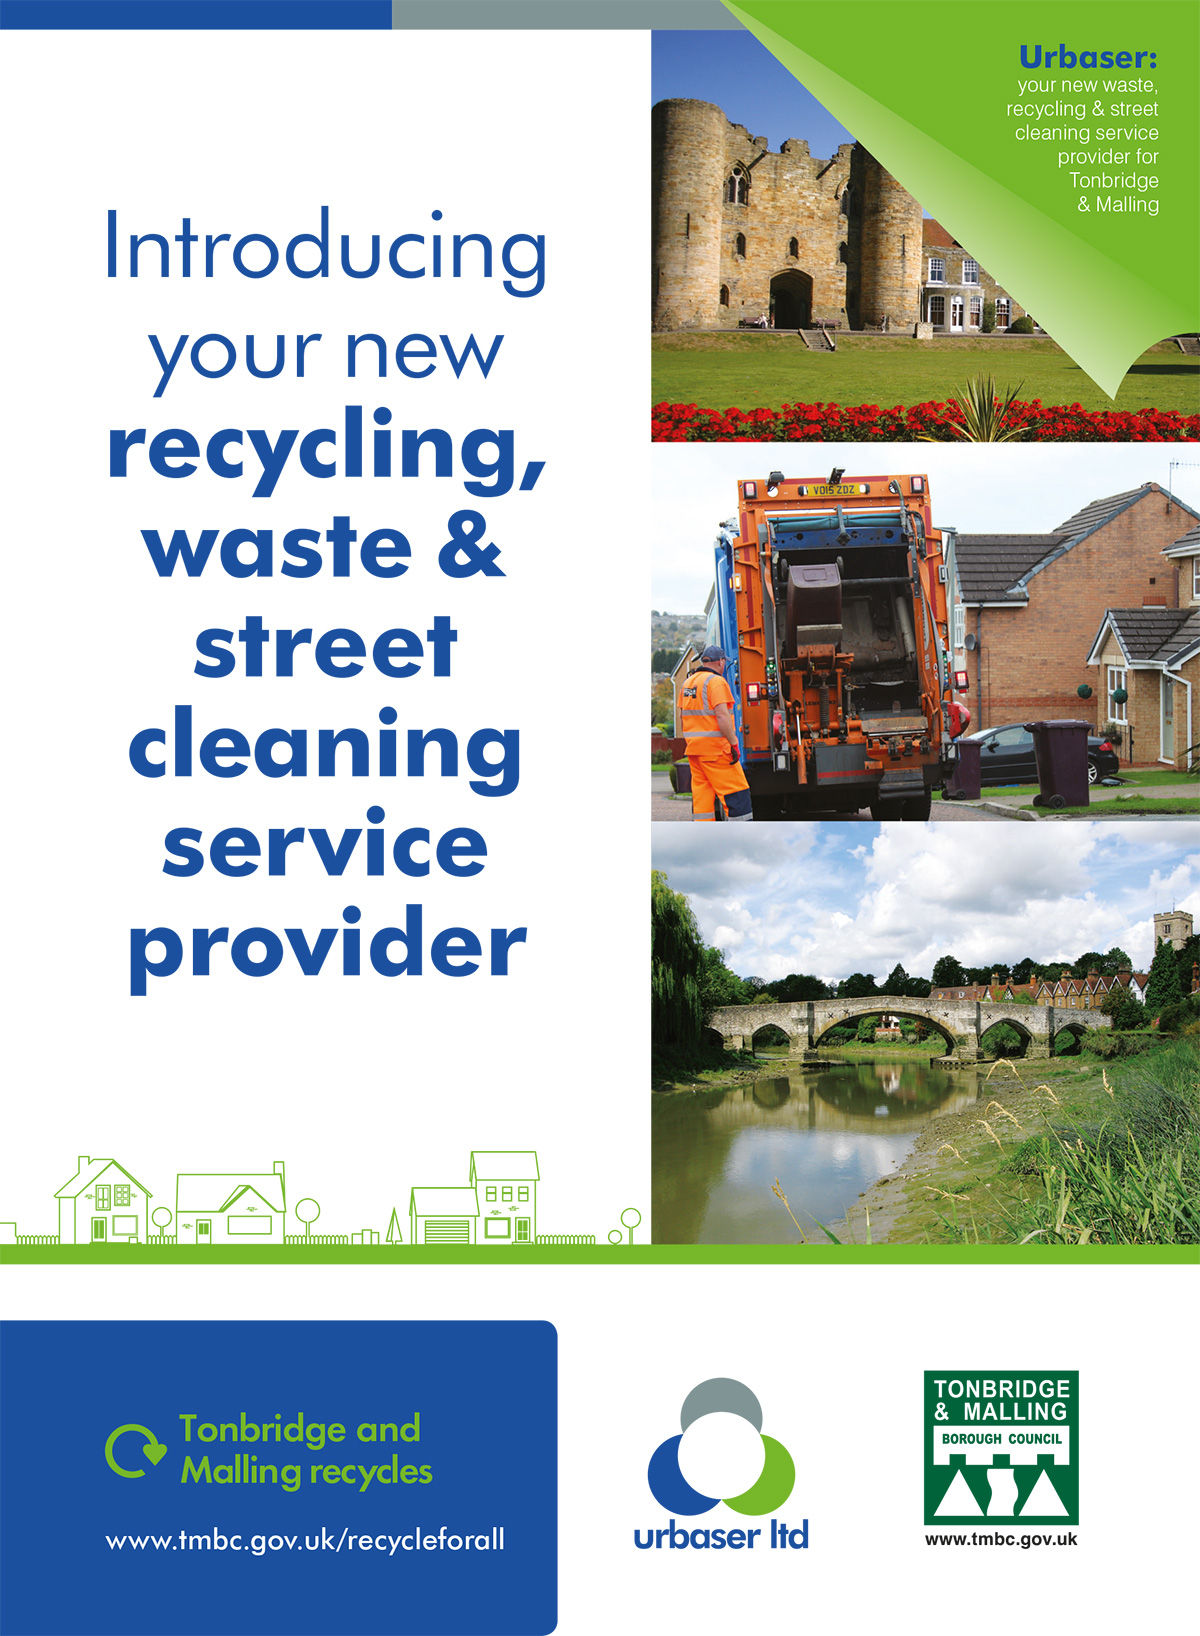 Urbaser Tonbridge Waste Provider - Text version follows images